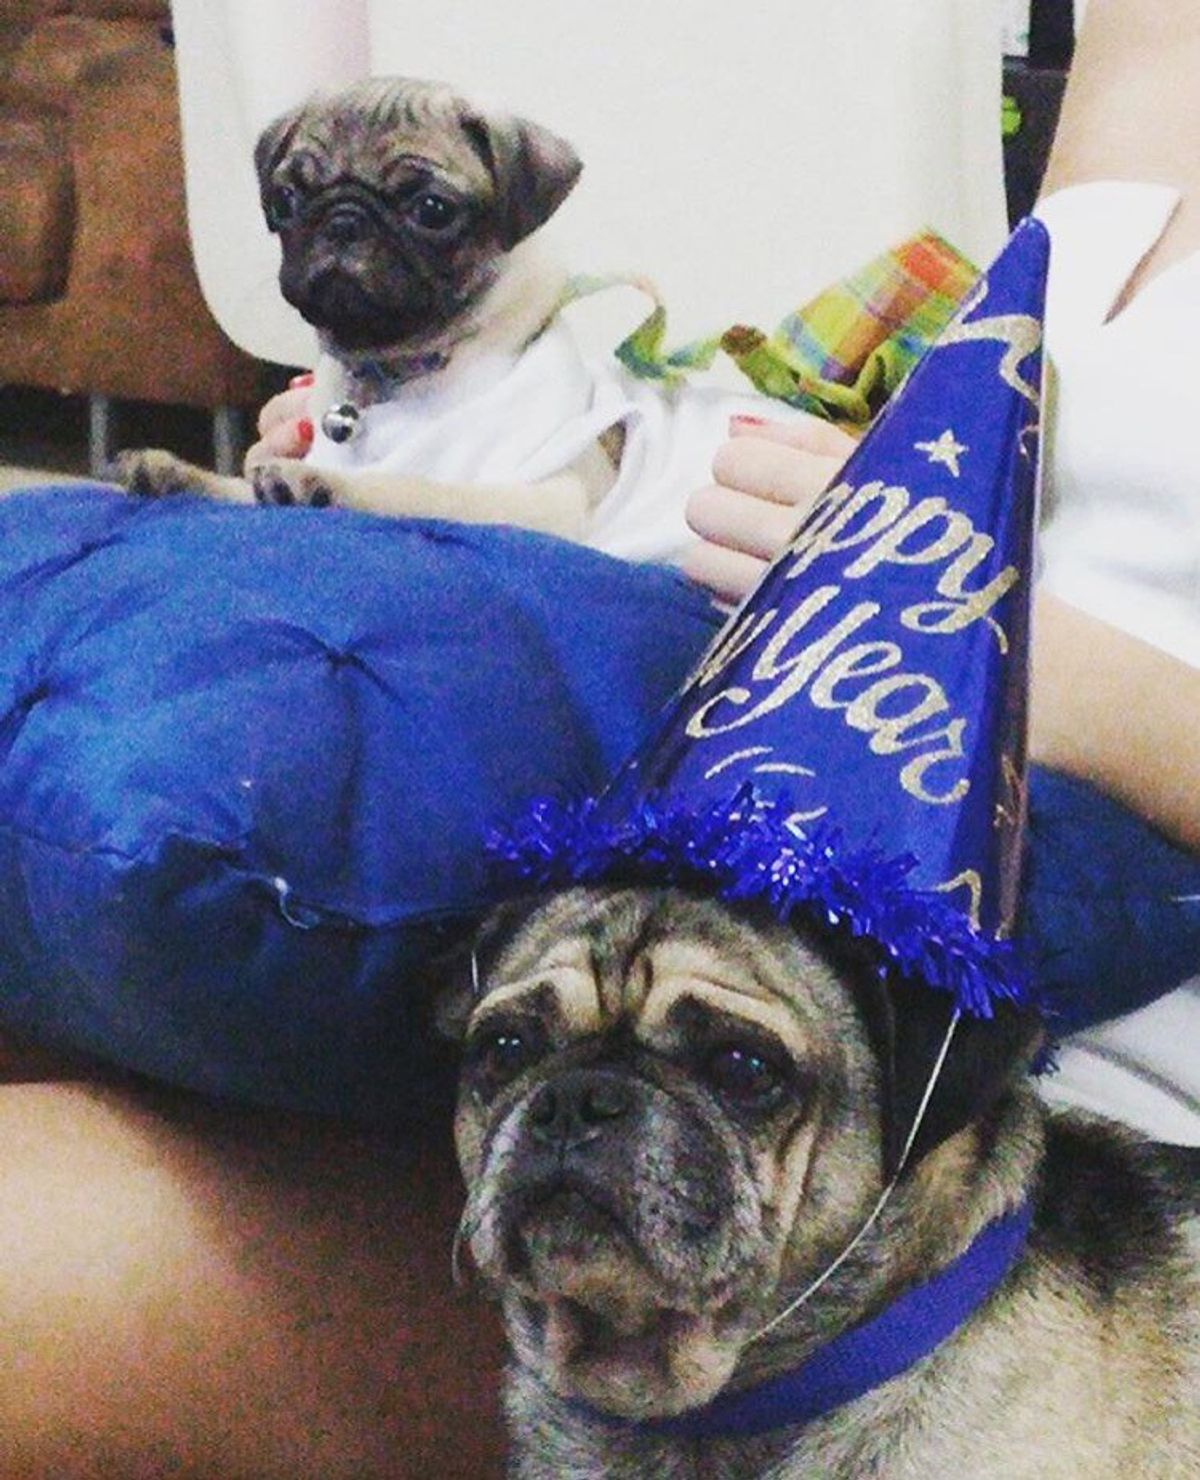 12 Reasons Why Pugs Are Better Than Anything Else On This Planet